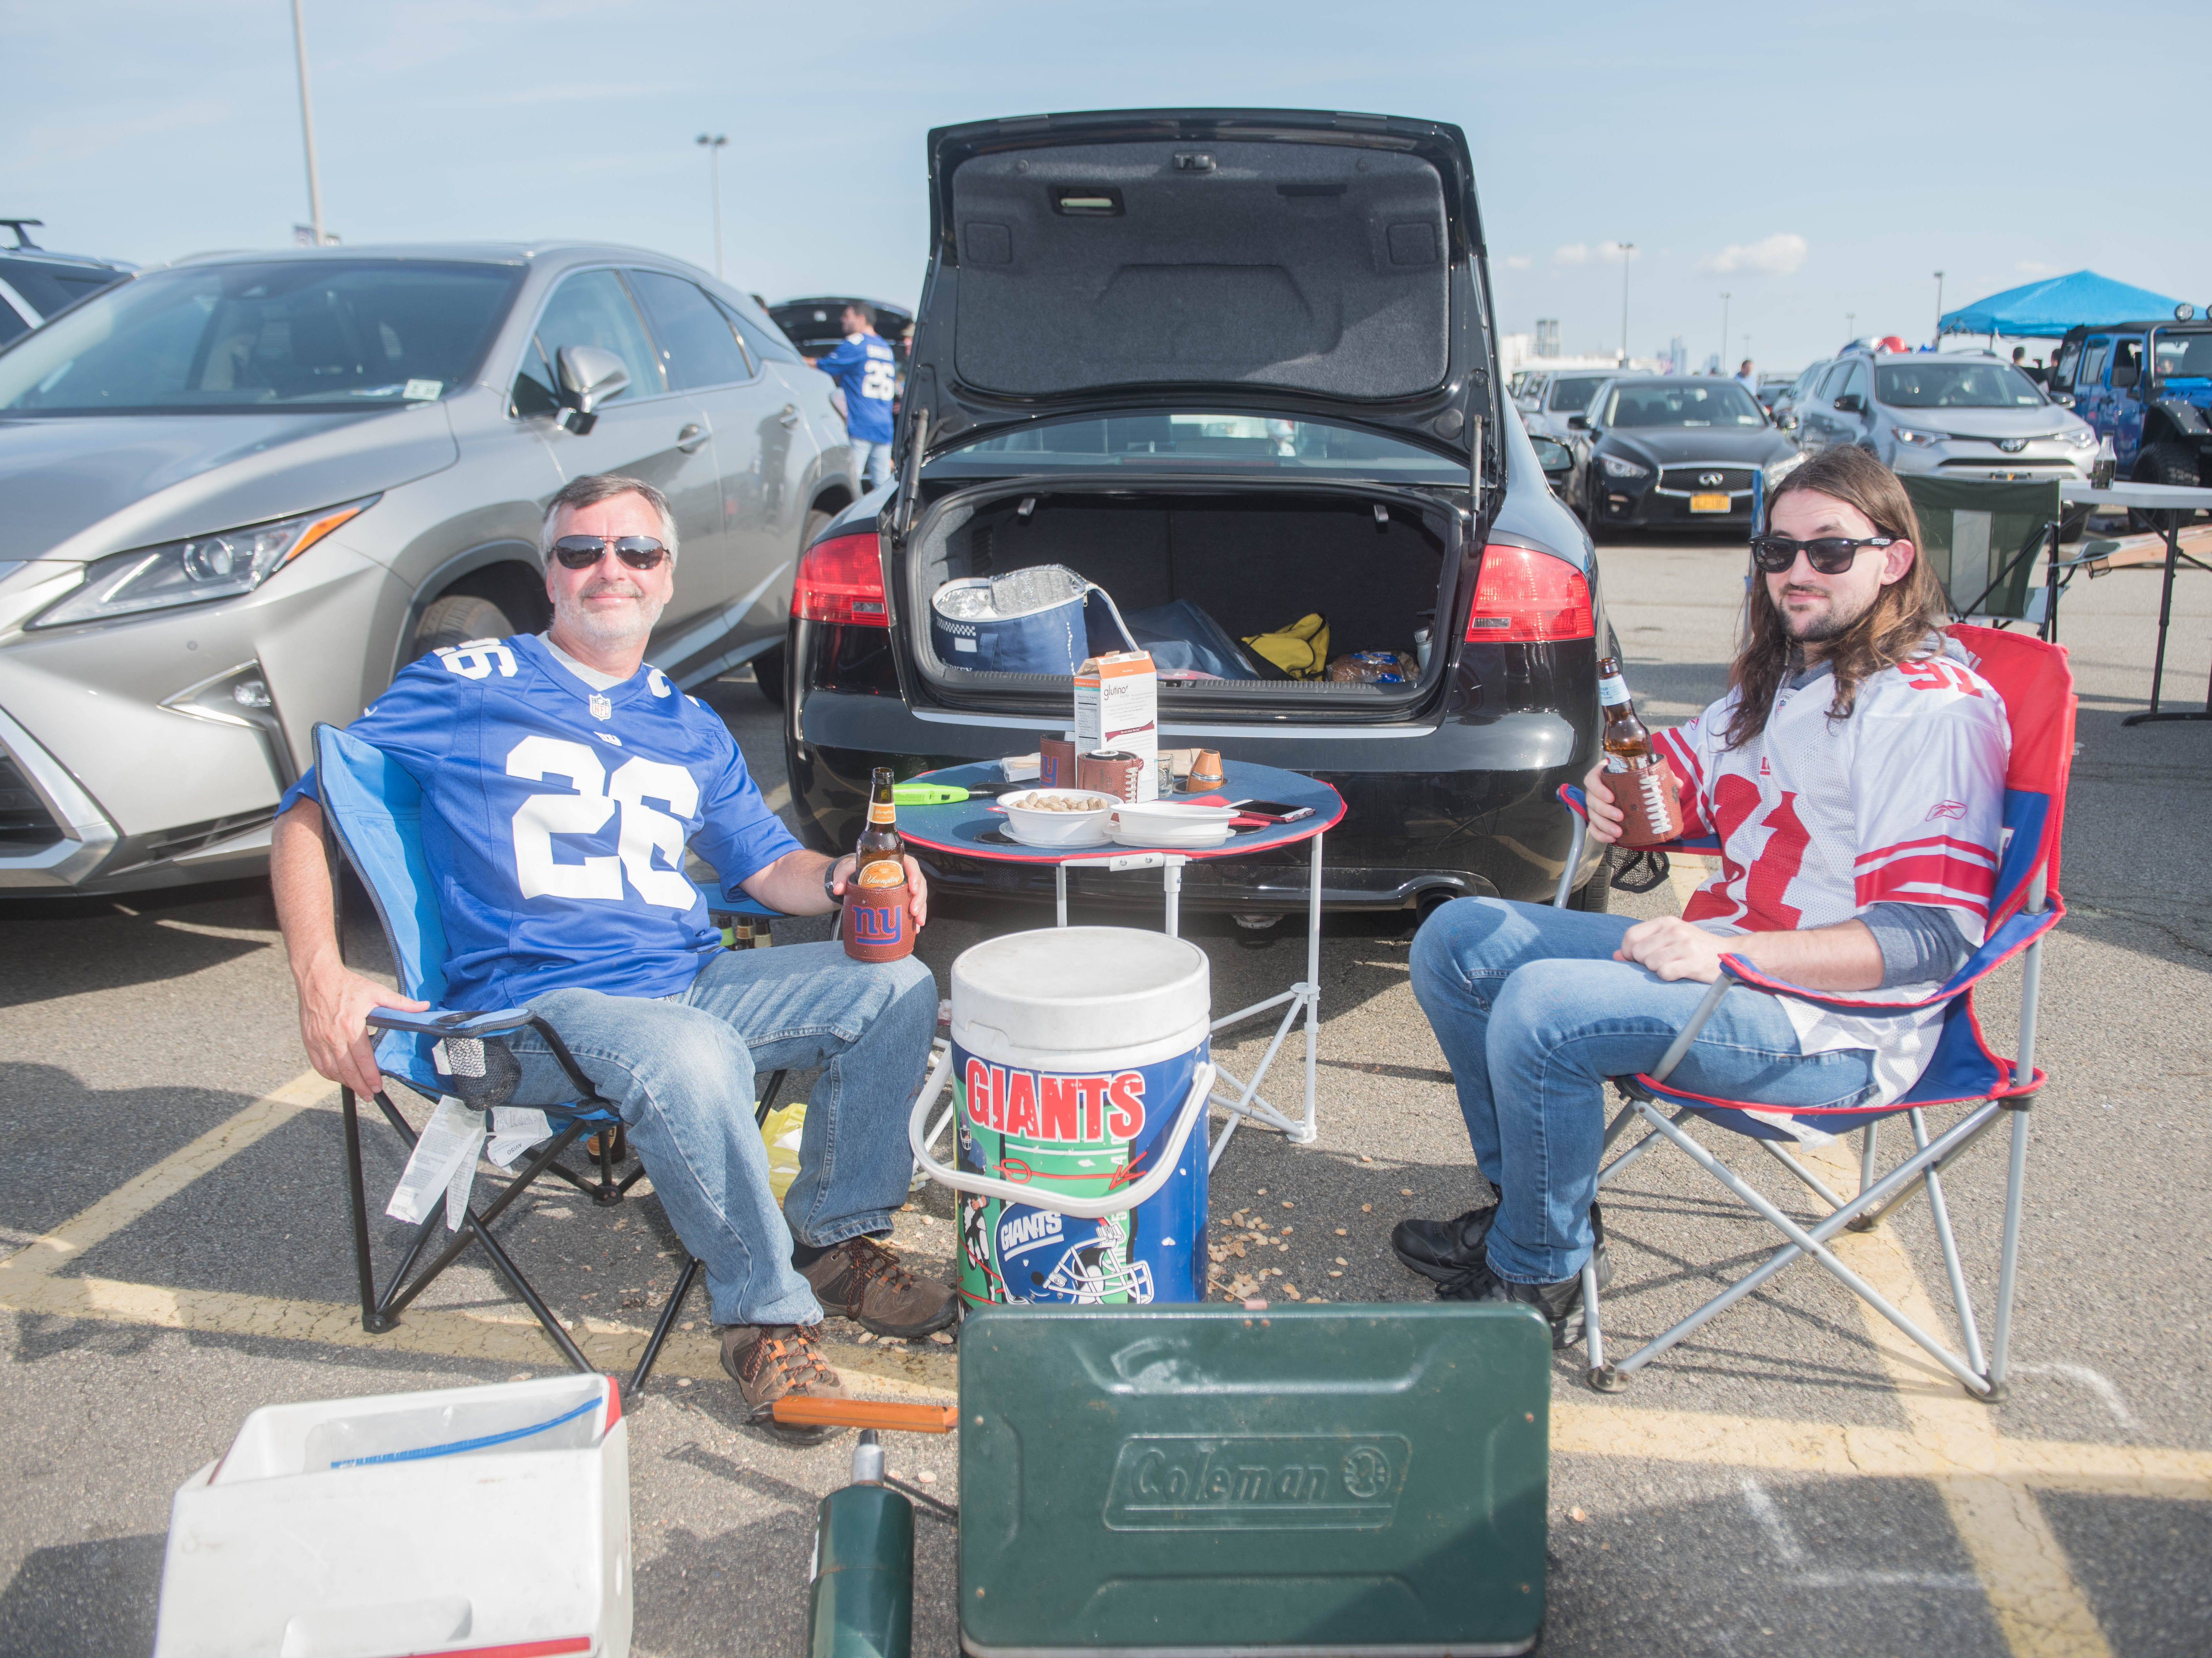 Phil and Alex at the Giants vs. Saints tailgate party, Sunday, Sept. 30, 2018.